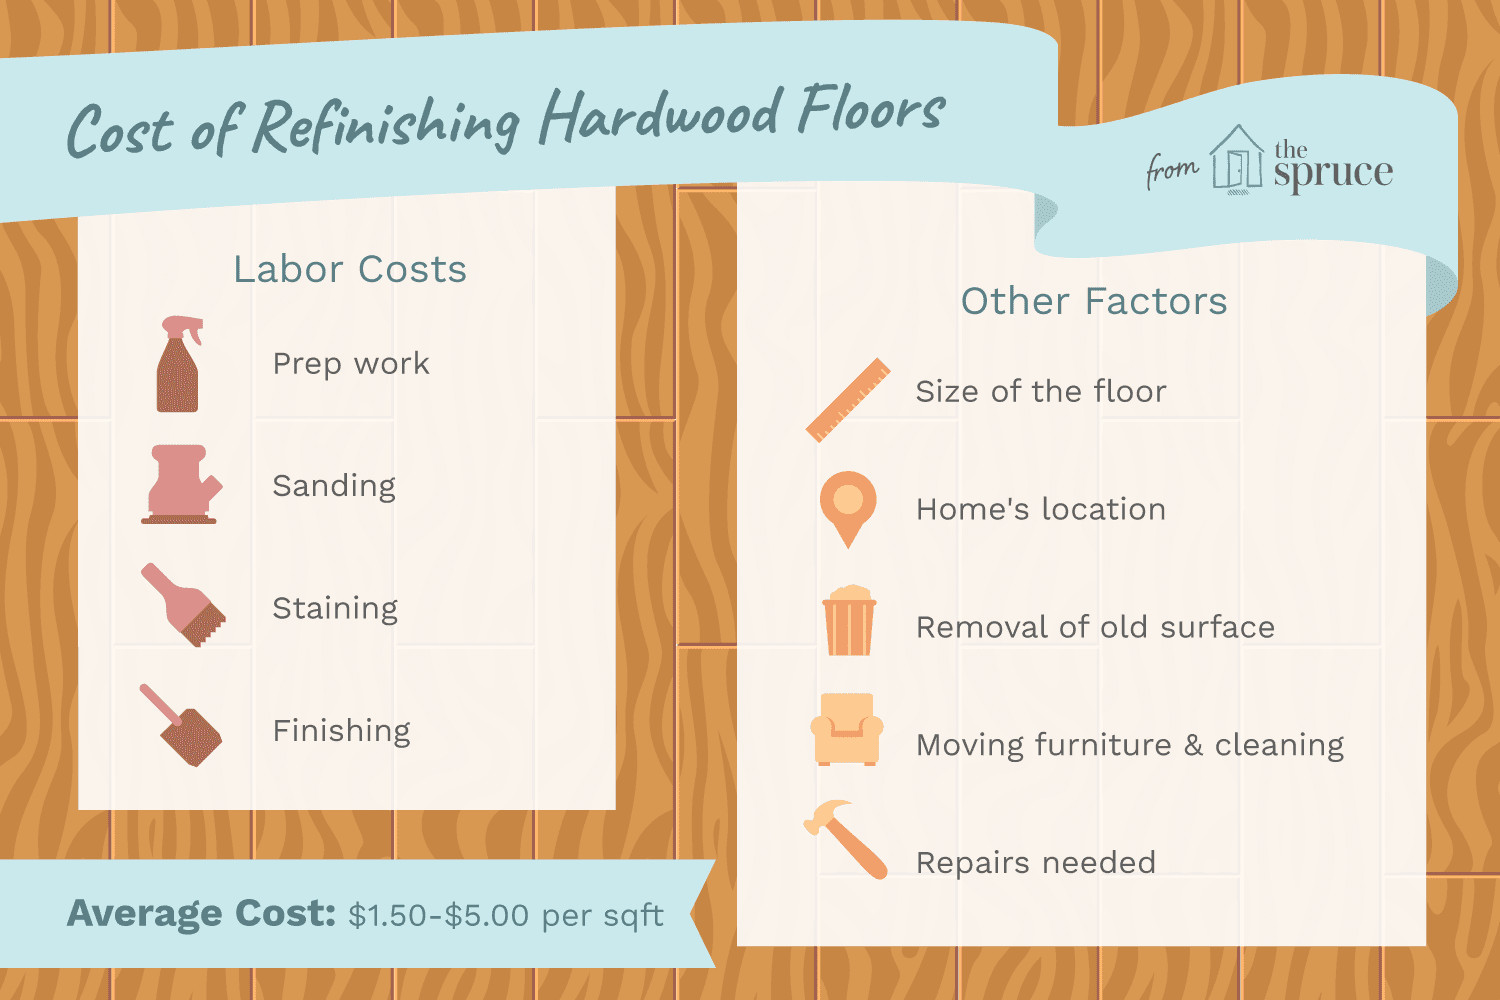 hardwood floor installation south jersey of the cost to refinish hardwood floors throughout cost to refinish hardwood floors 1314853 final 5bb6259346e0fb0026825ce2